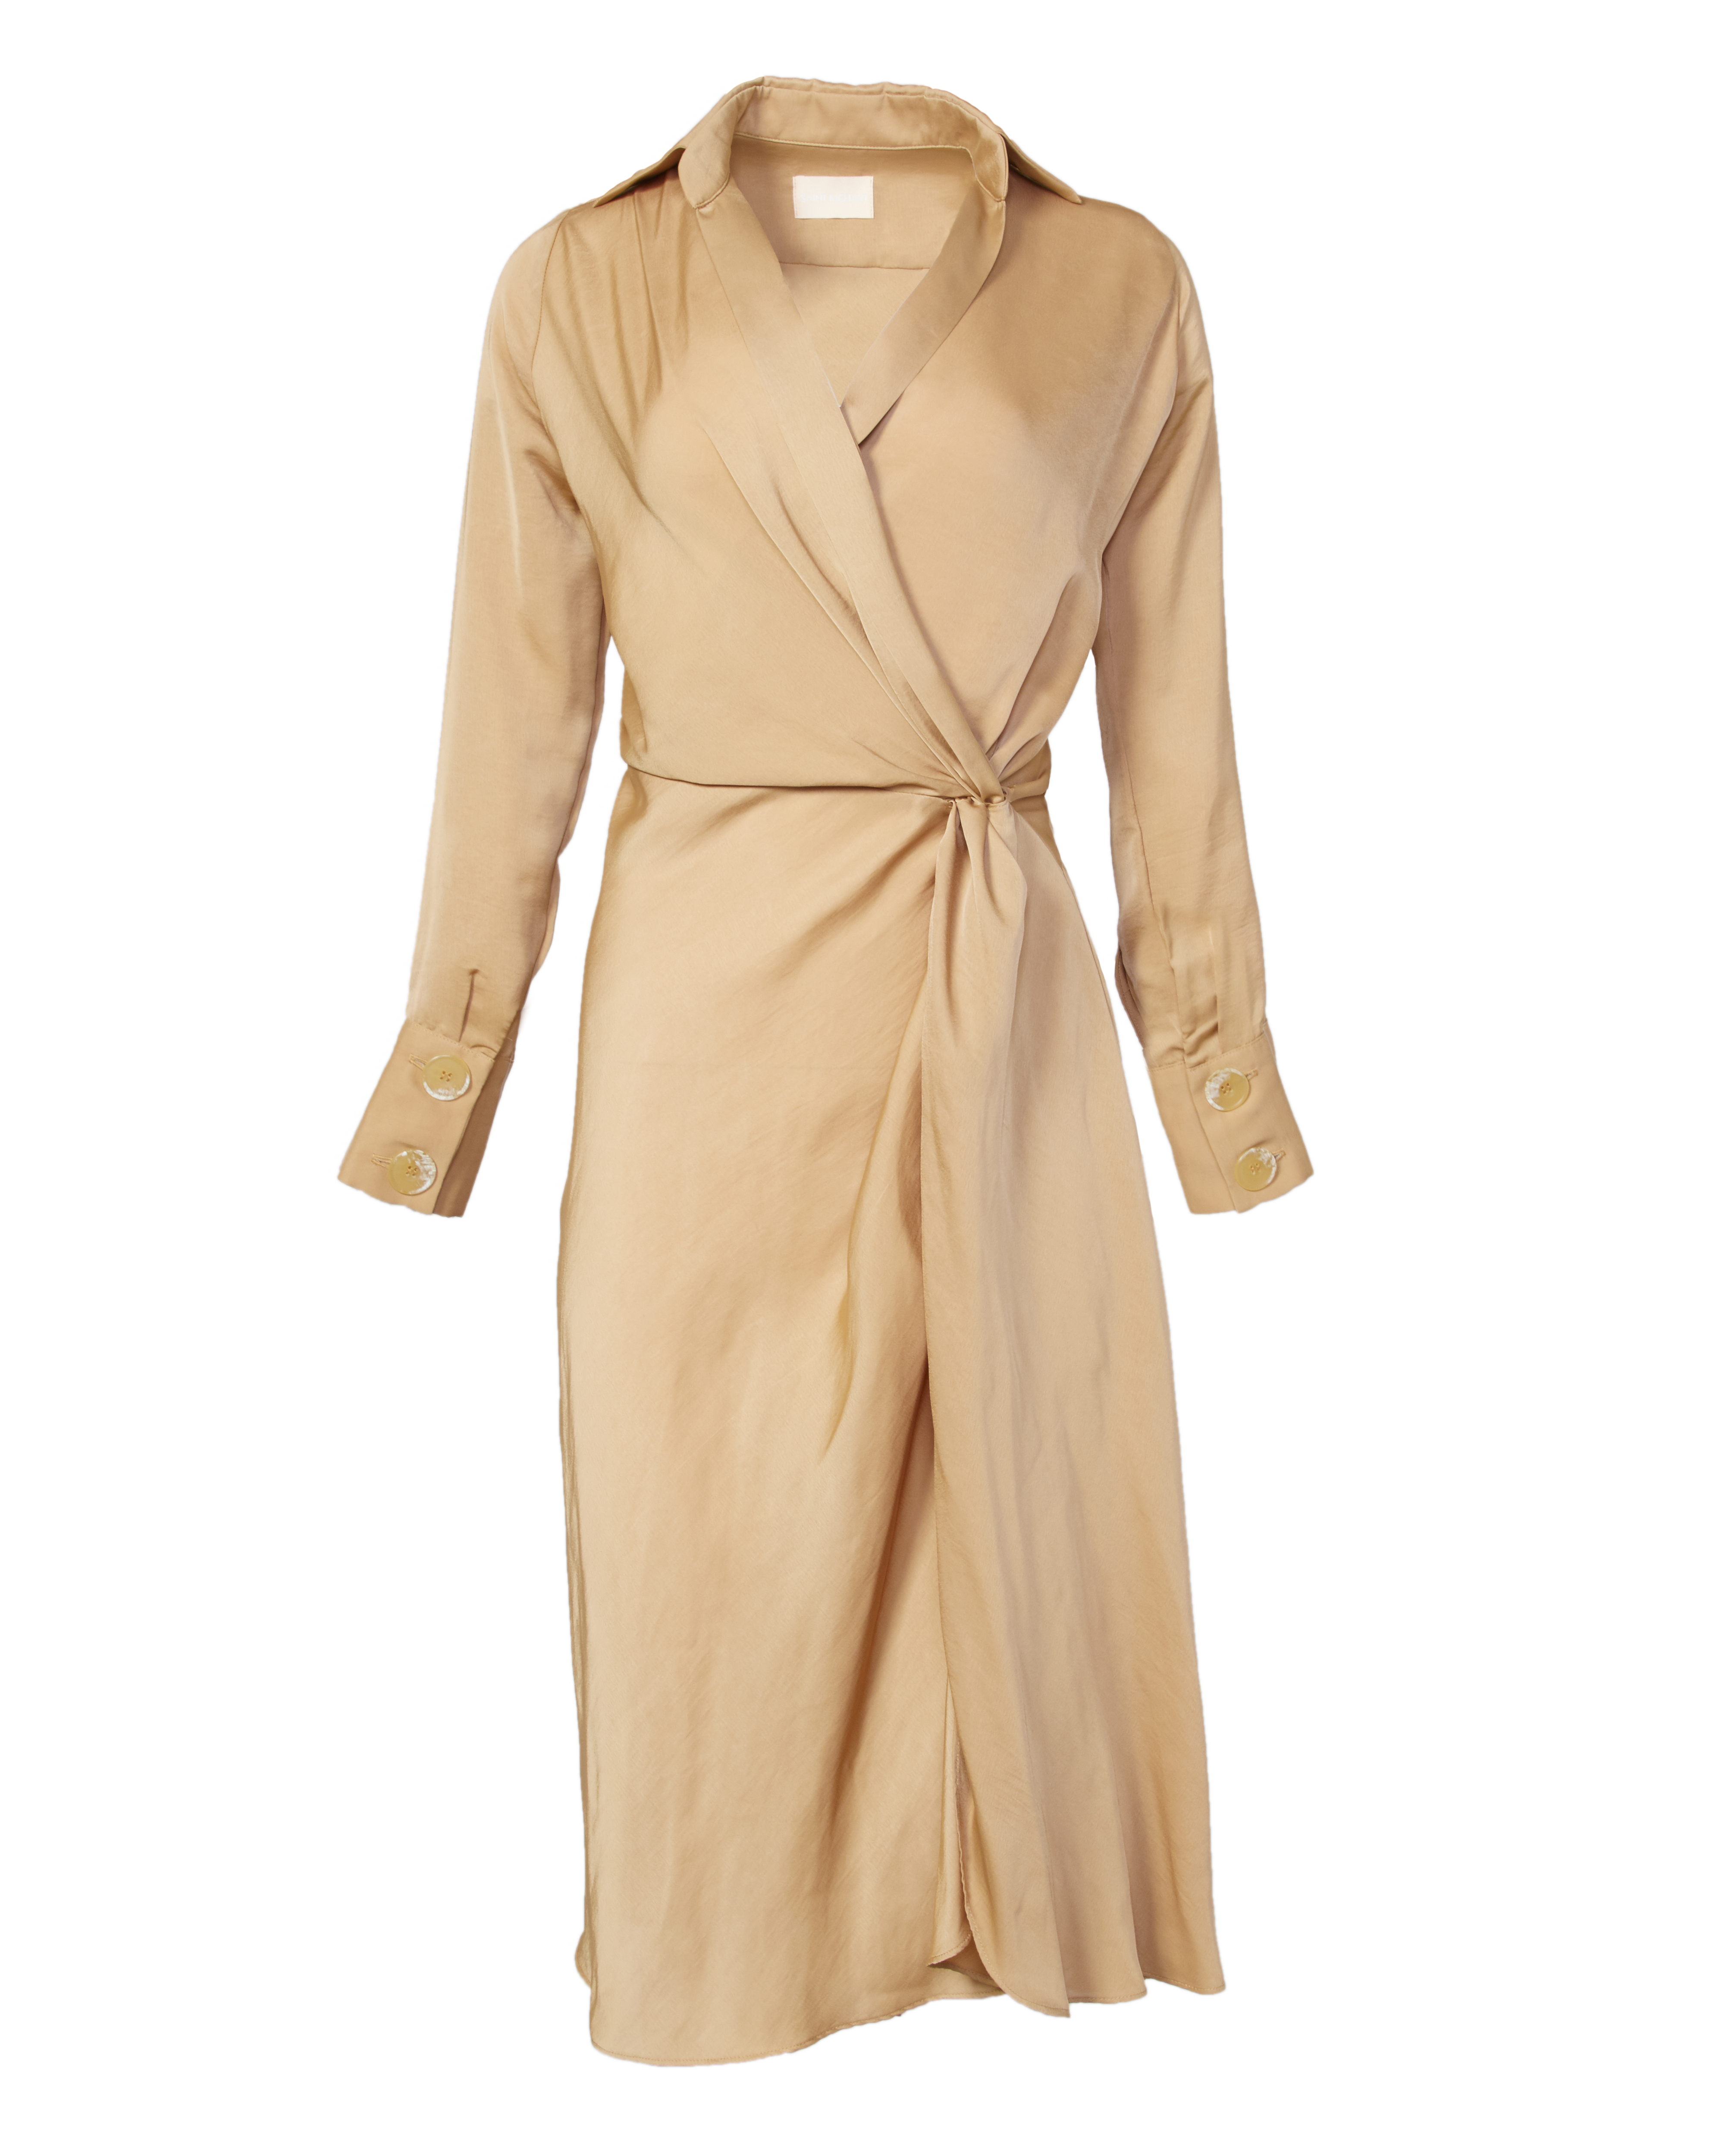 saint-mojavi - MAHARAJA WRAP DRESS - SAÏNT MOJAVÏ -